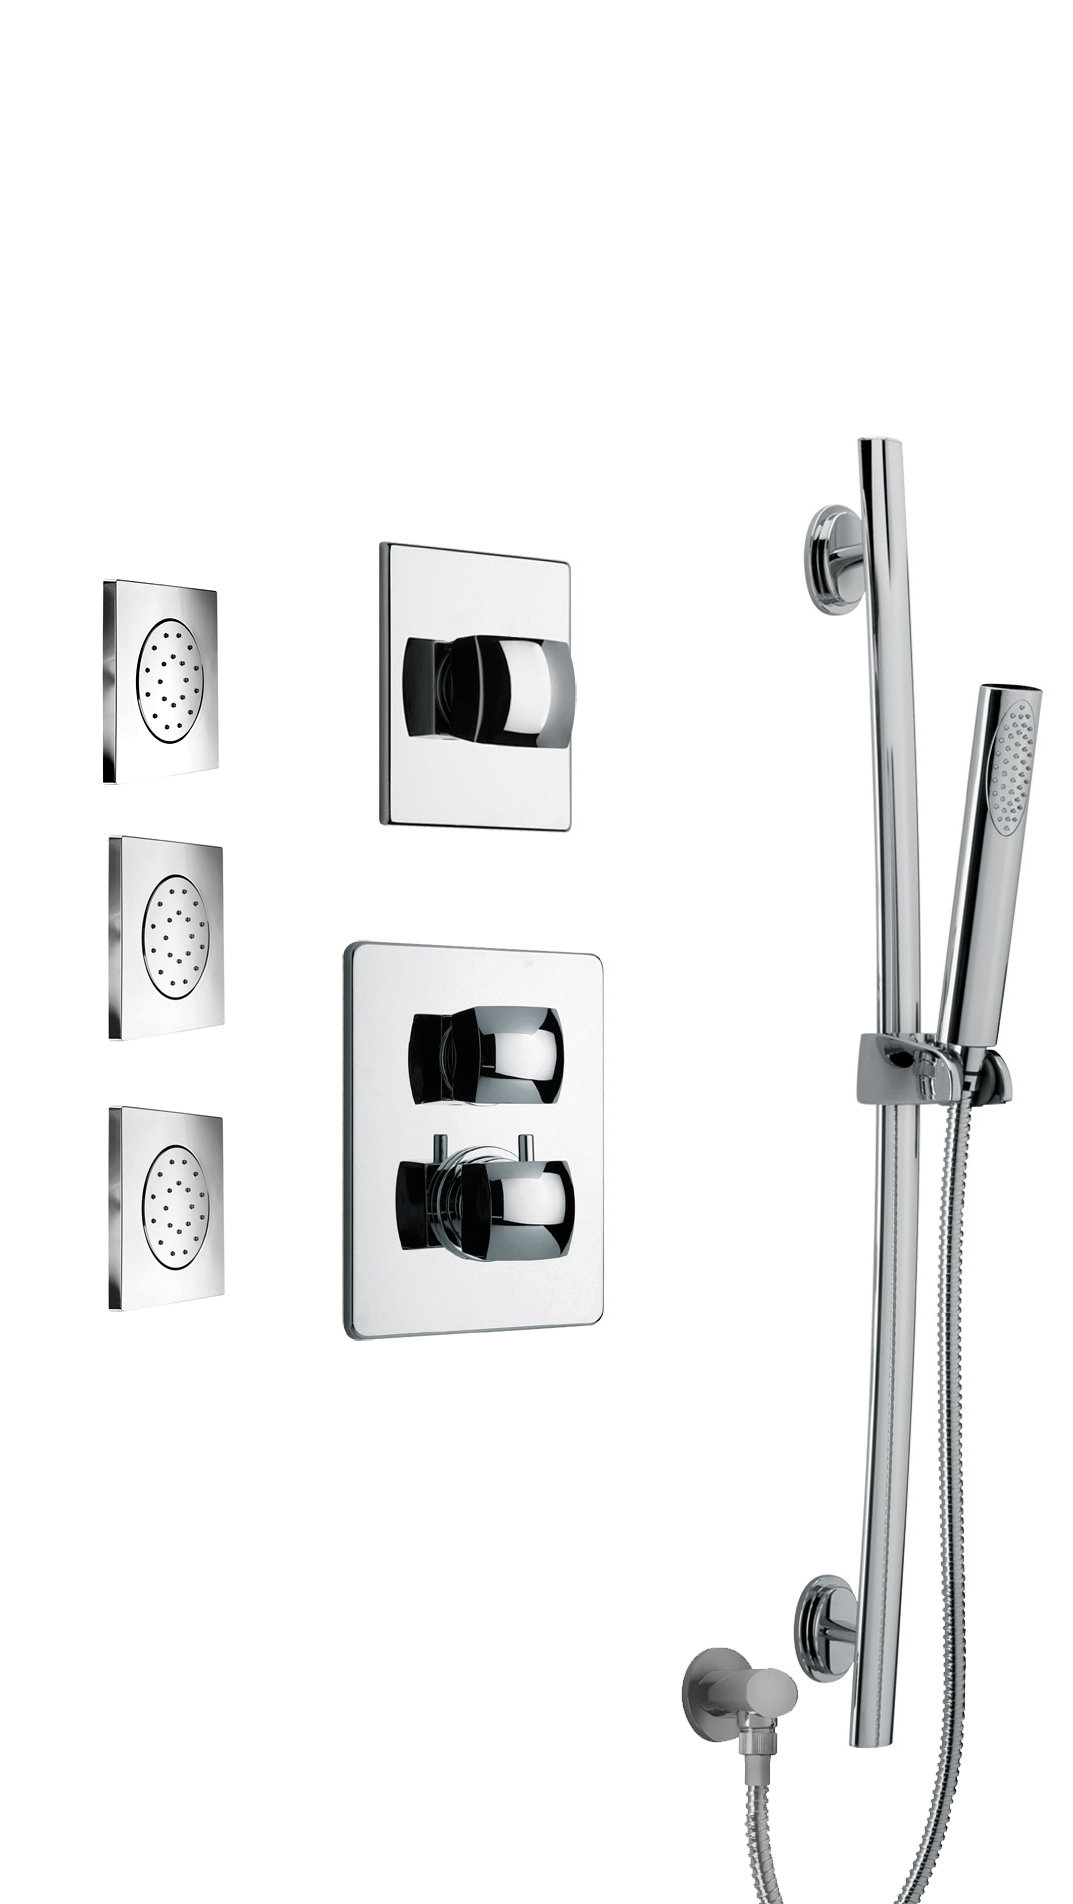 "Thermostatic Shower With 3/4"" Ceramic Disc Volume Control, 3-Way Diverter, Slide Bar and 3 Concealed Body Jets in Chrome"